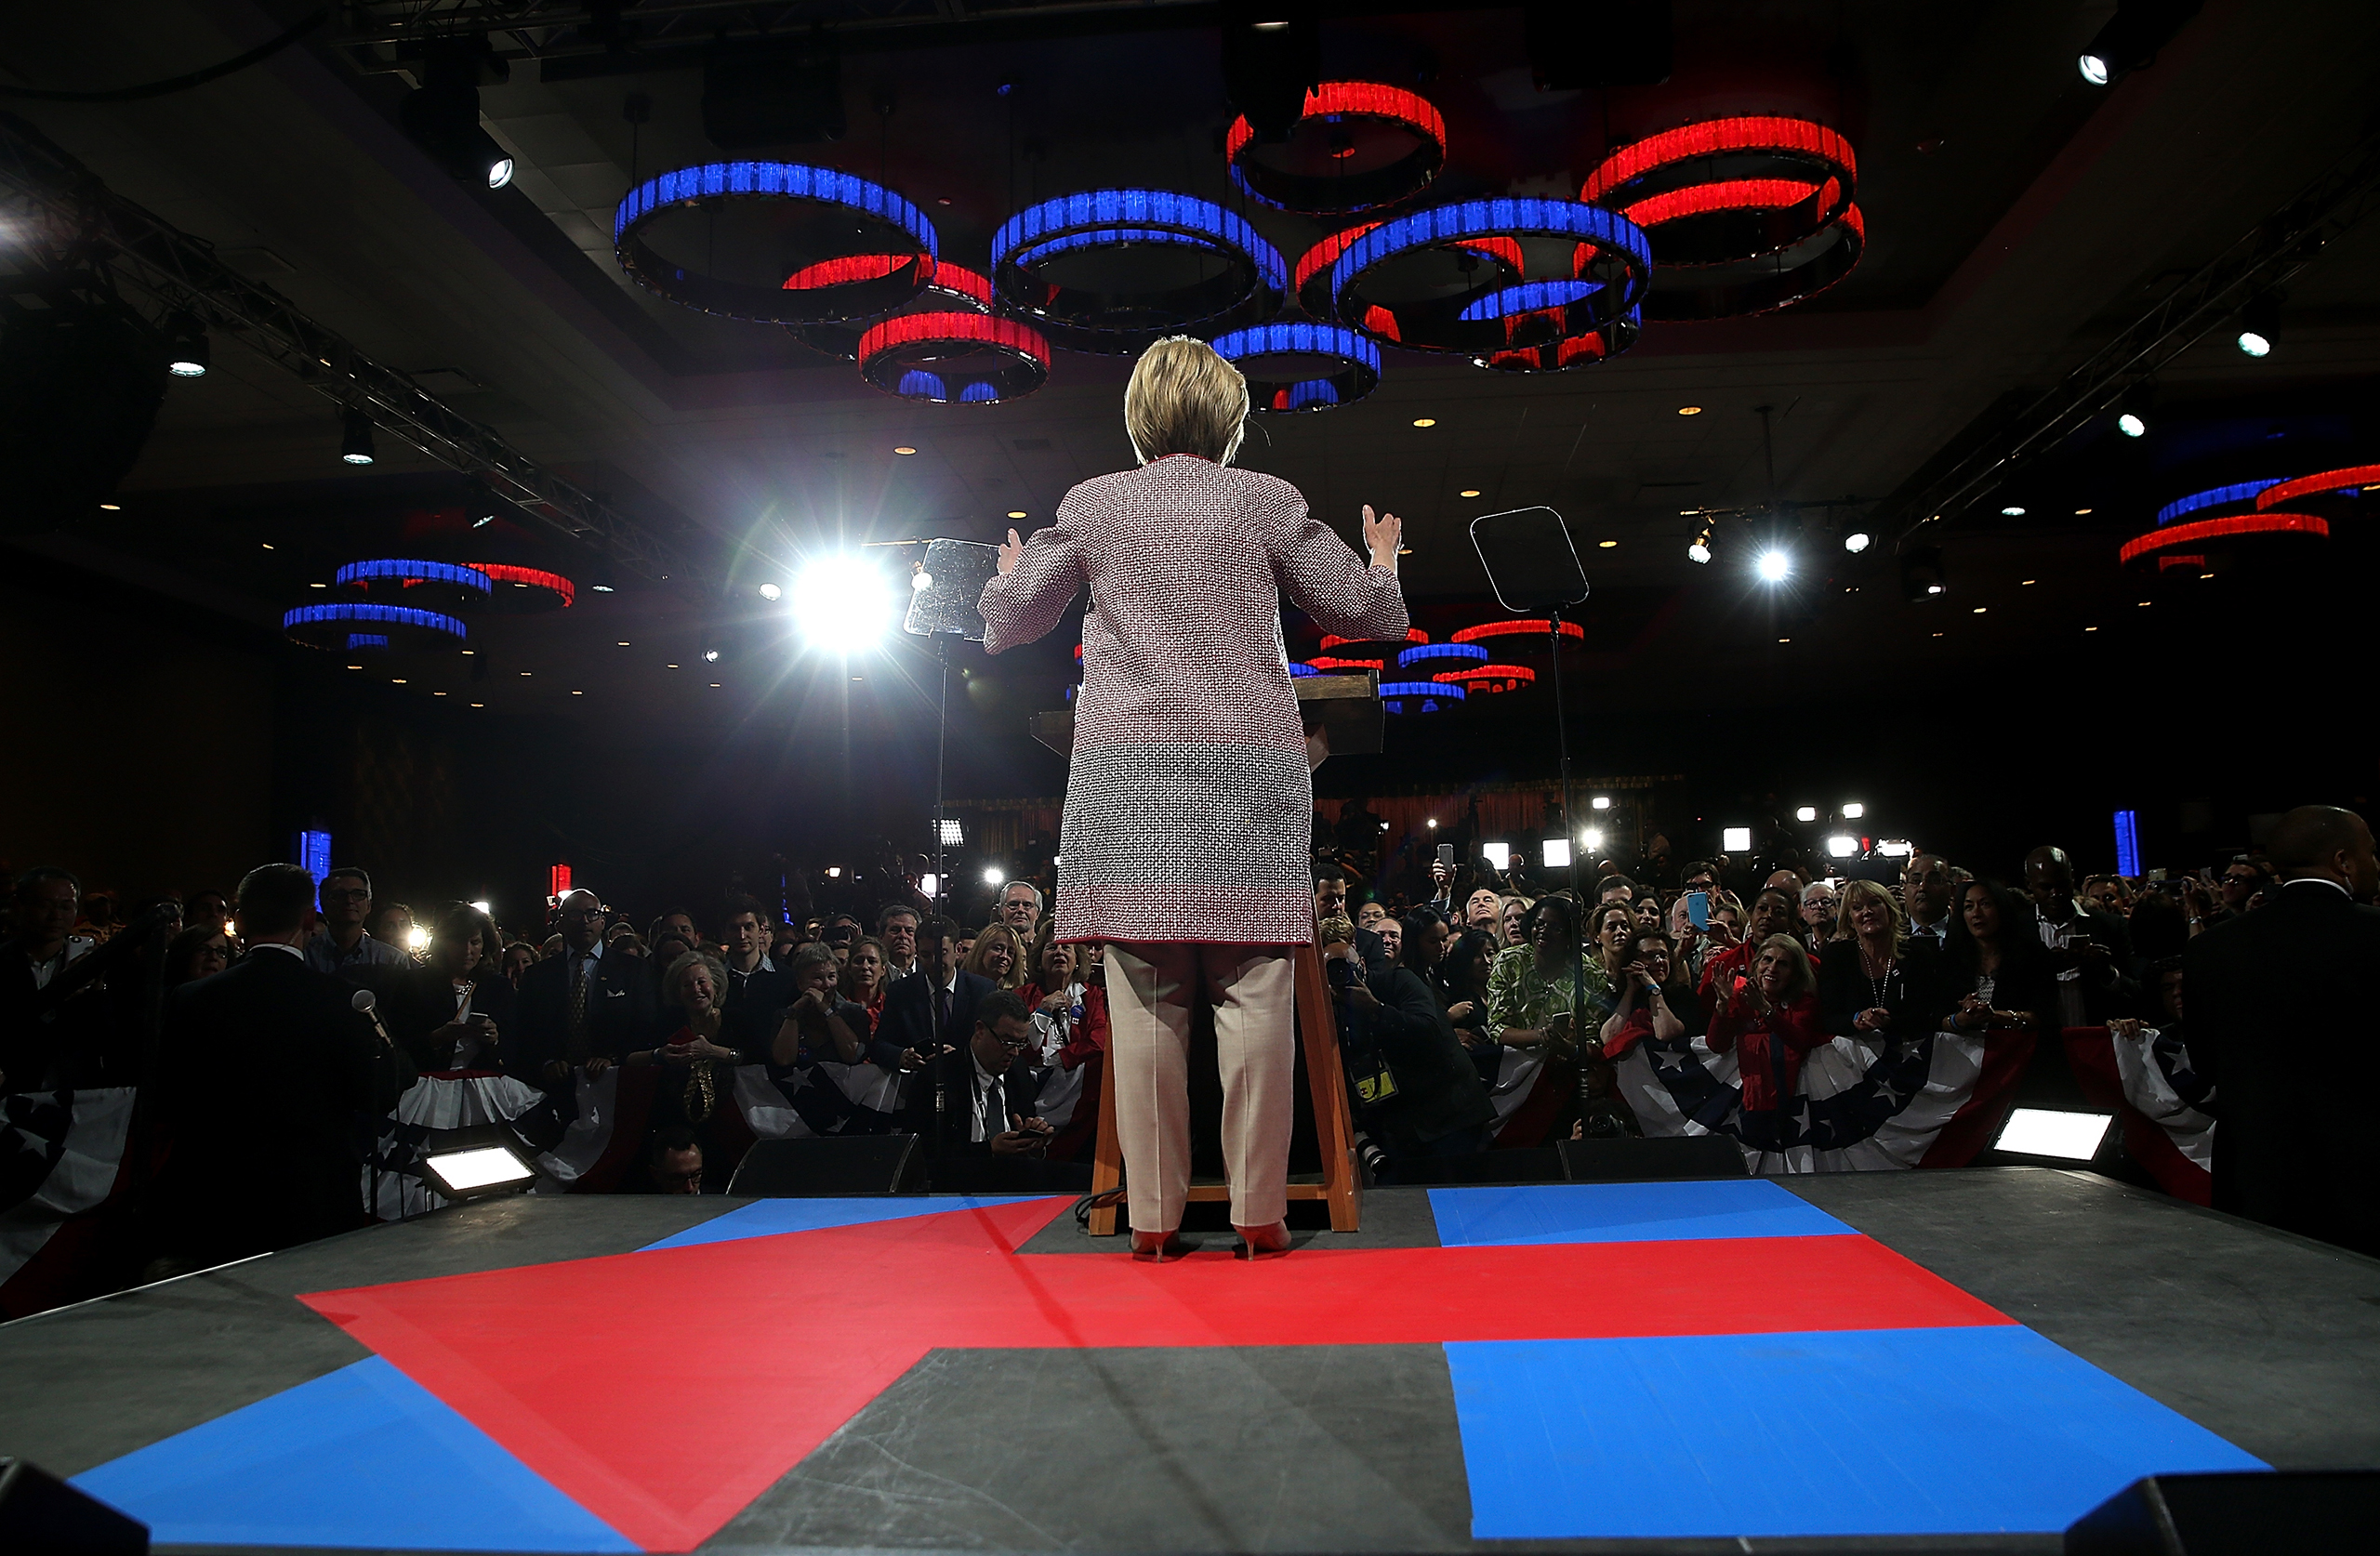 Hillary Clinton speaks during a primary election night gathering in New York City on April 19, 2016.